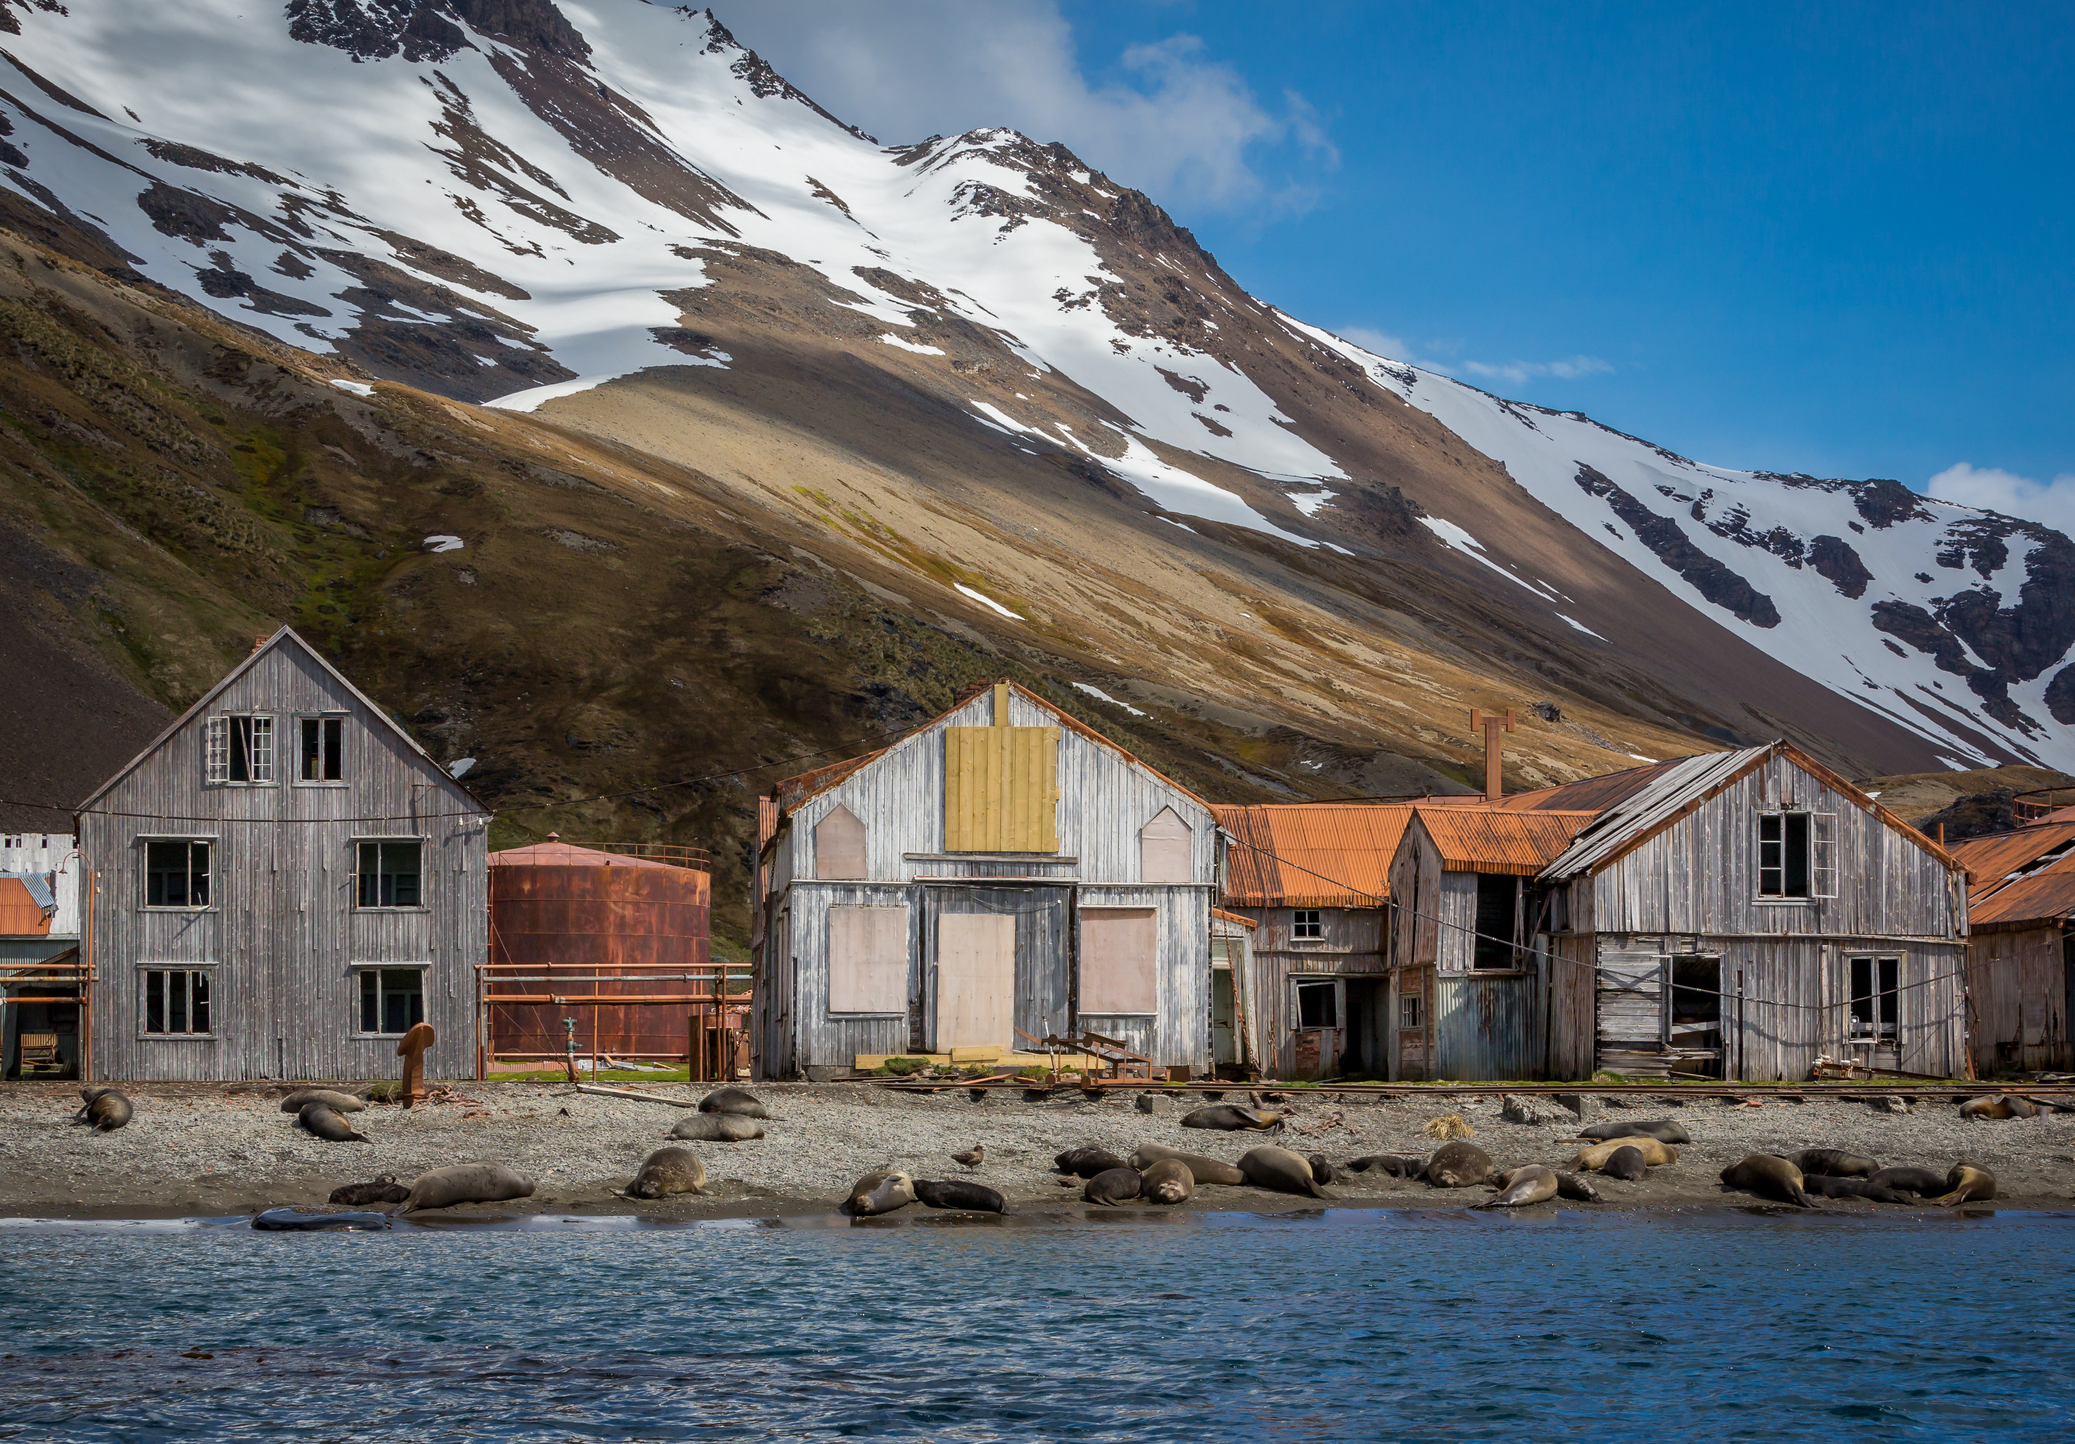 The Whaling Village Where Shackleton was Rescued.